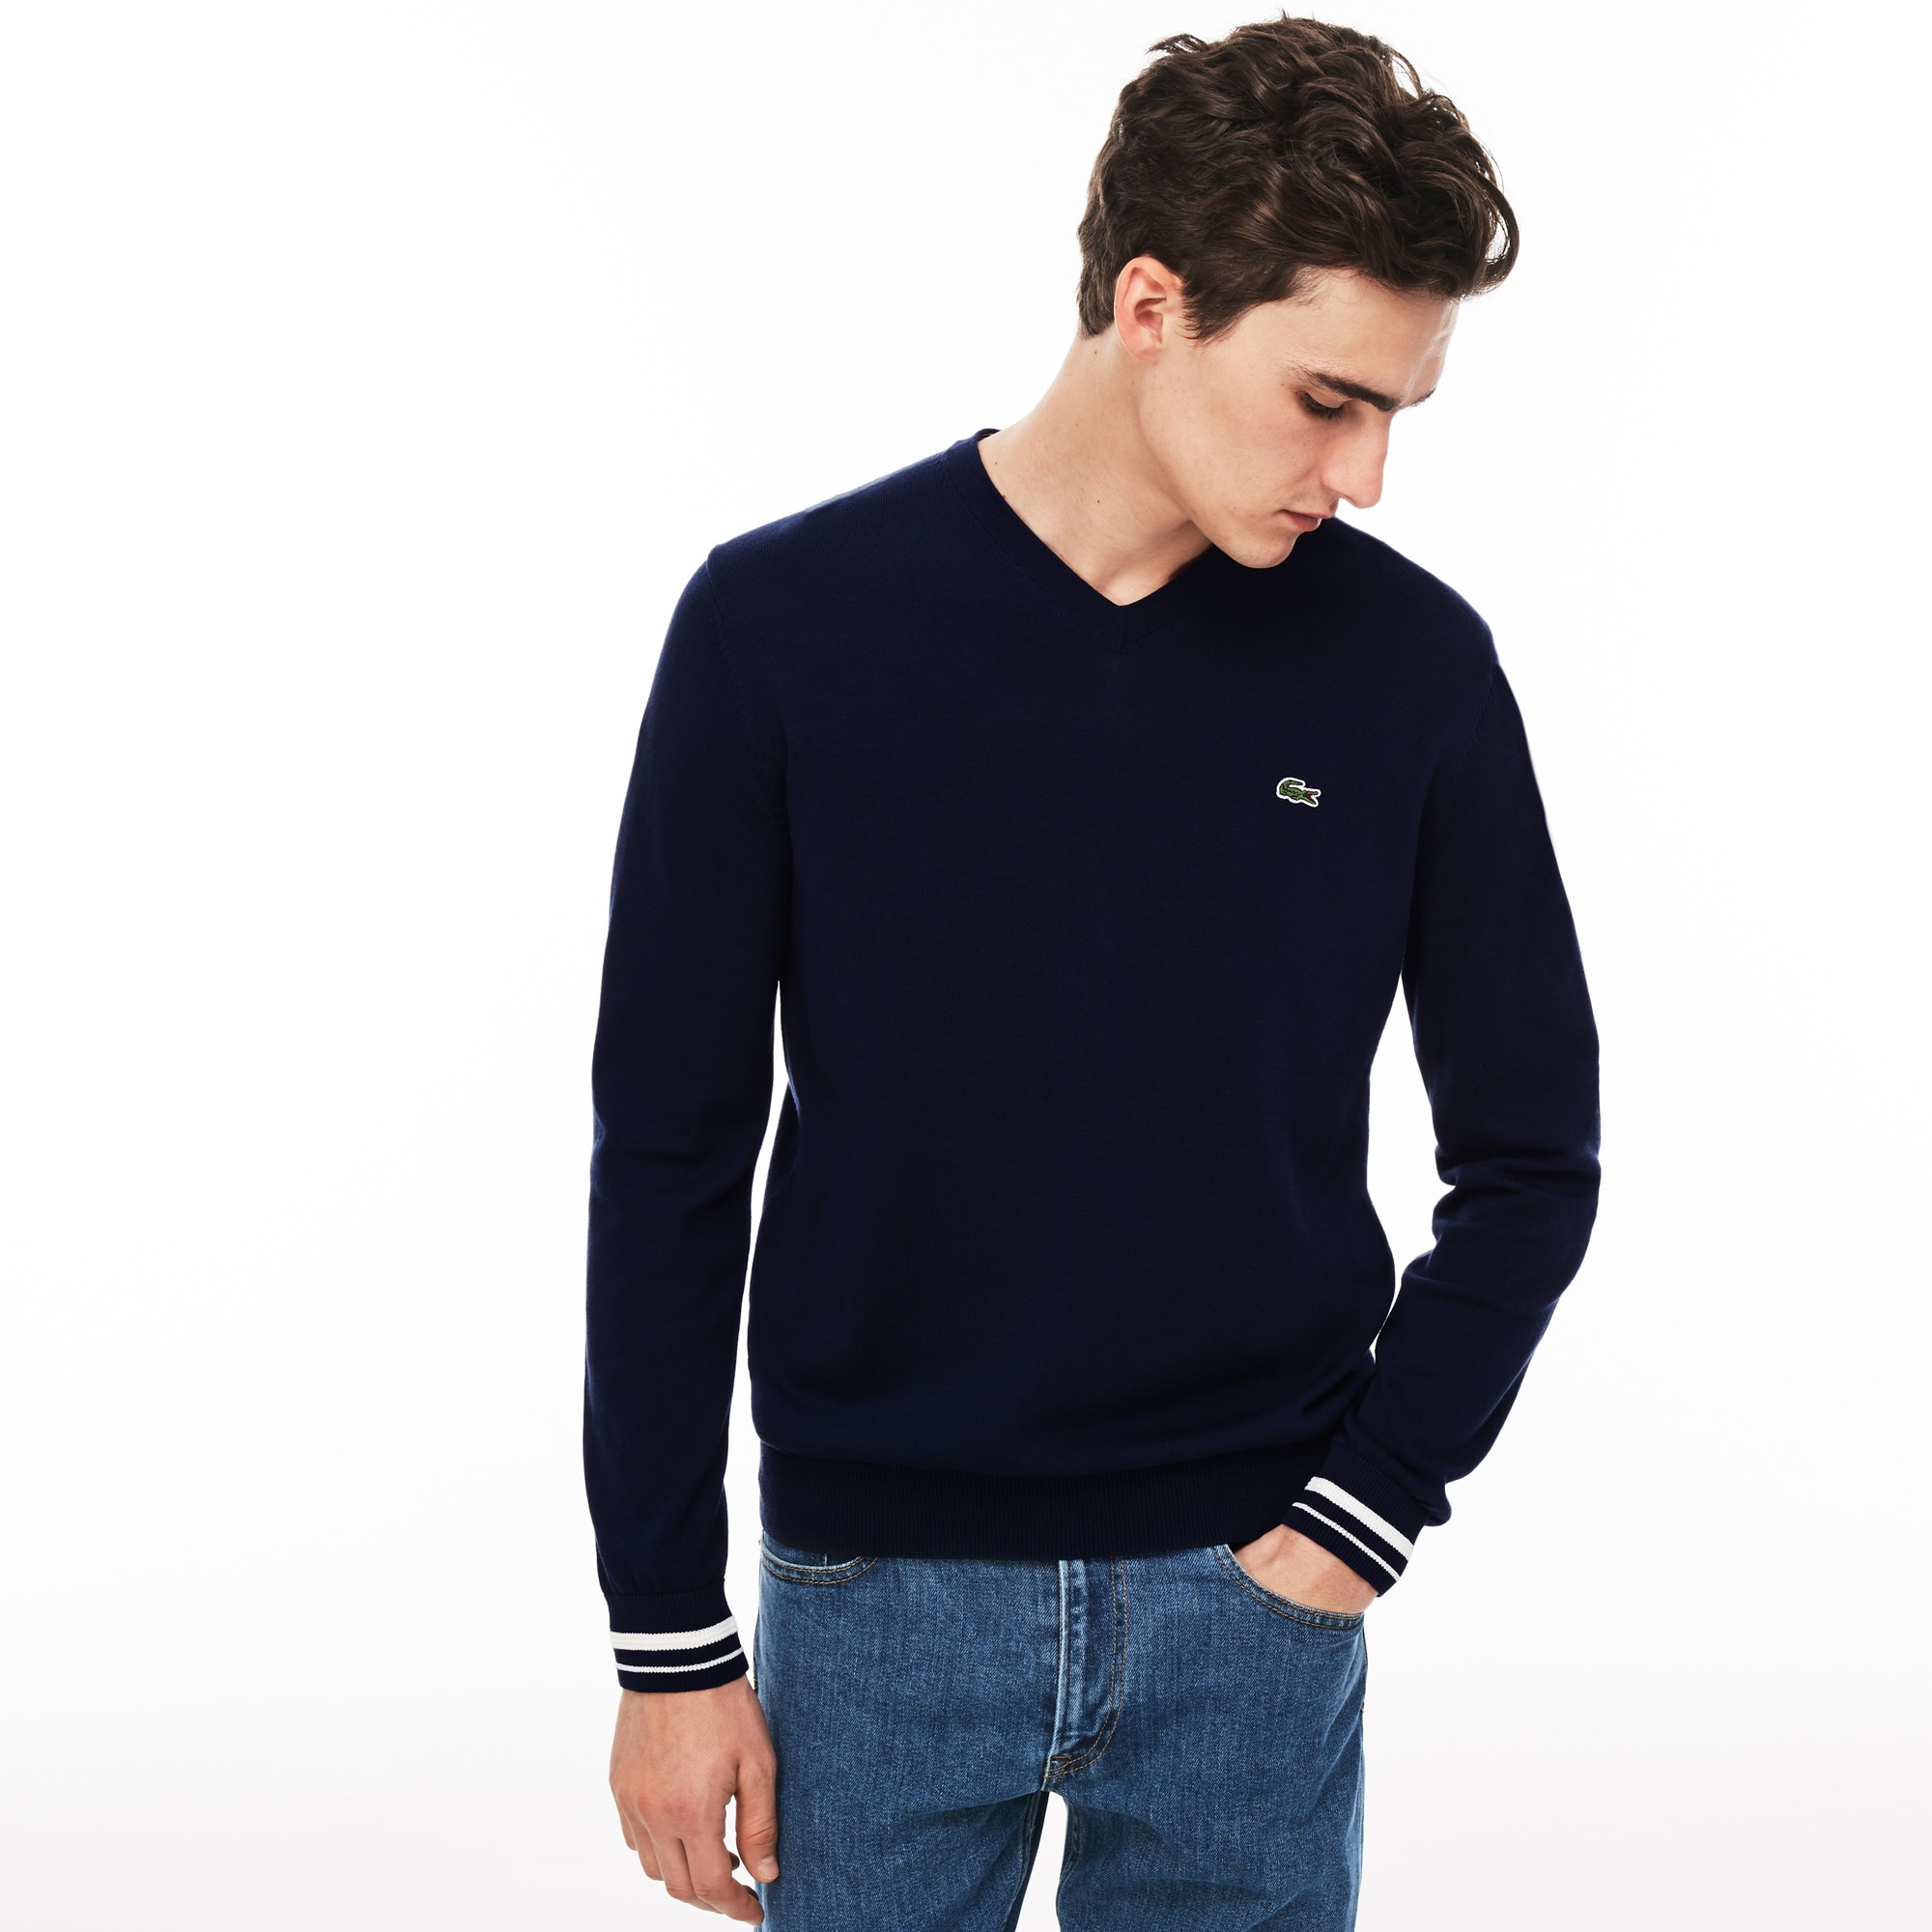 Men's V-neck Contrast Accents Cotton Jersey Sweater